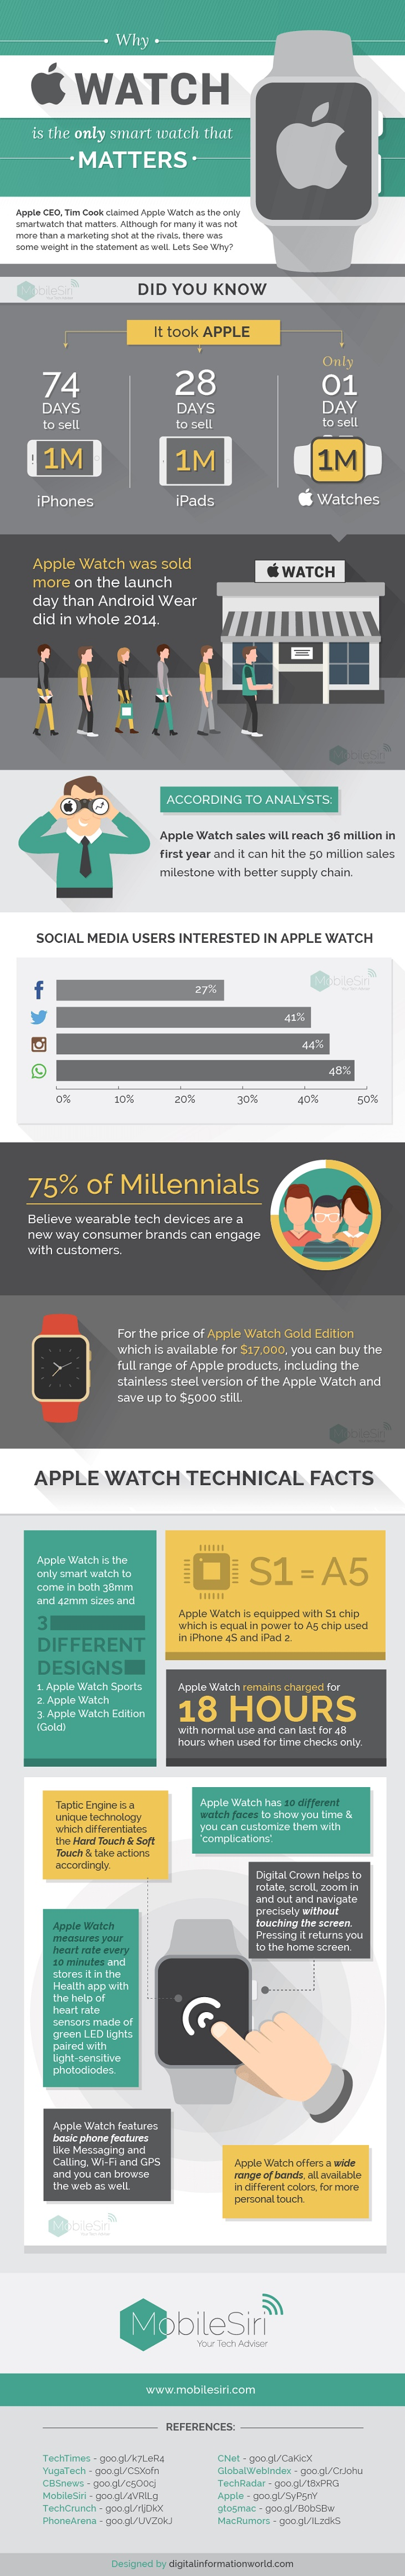 Why-Apple-Watch-Matters-Infographic